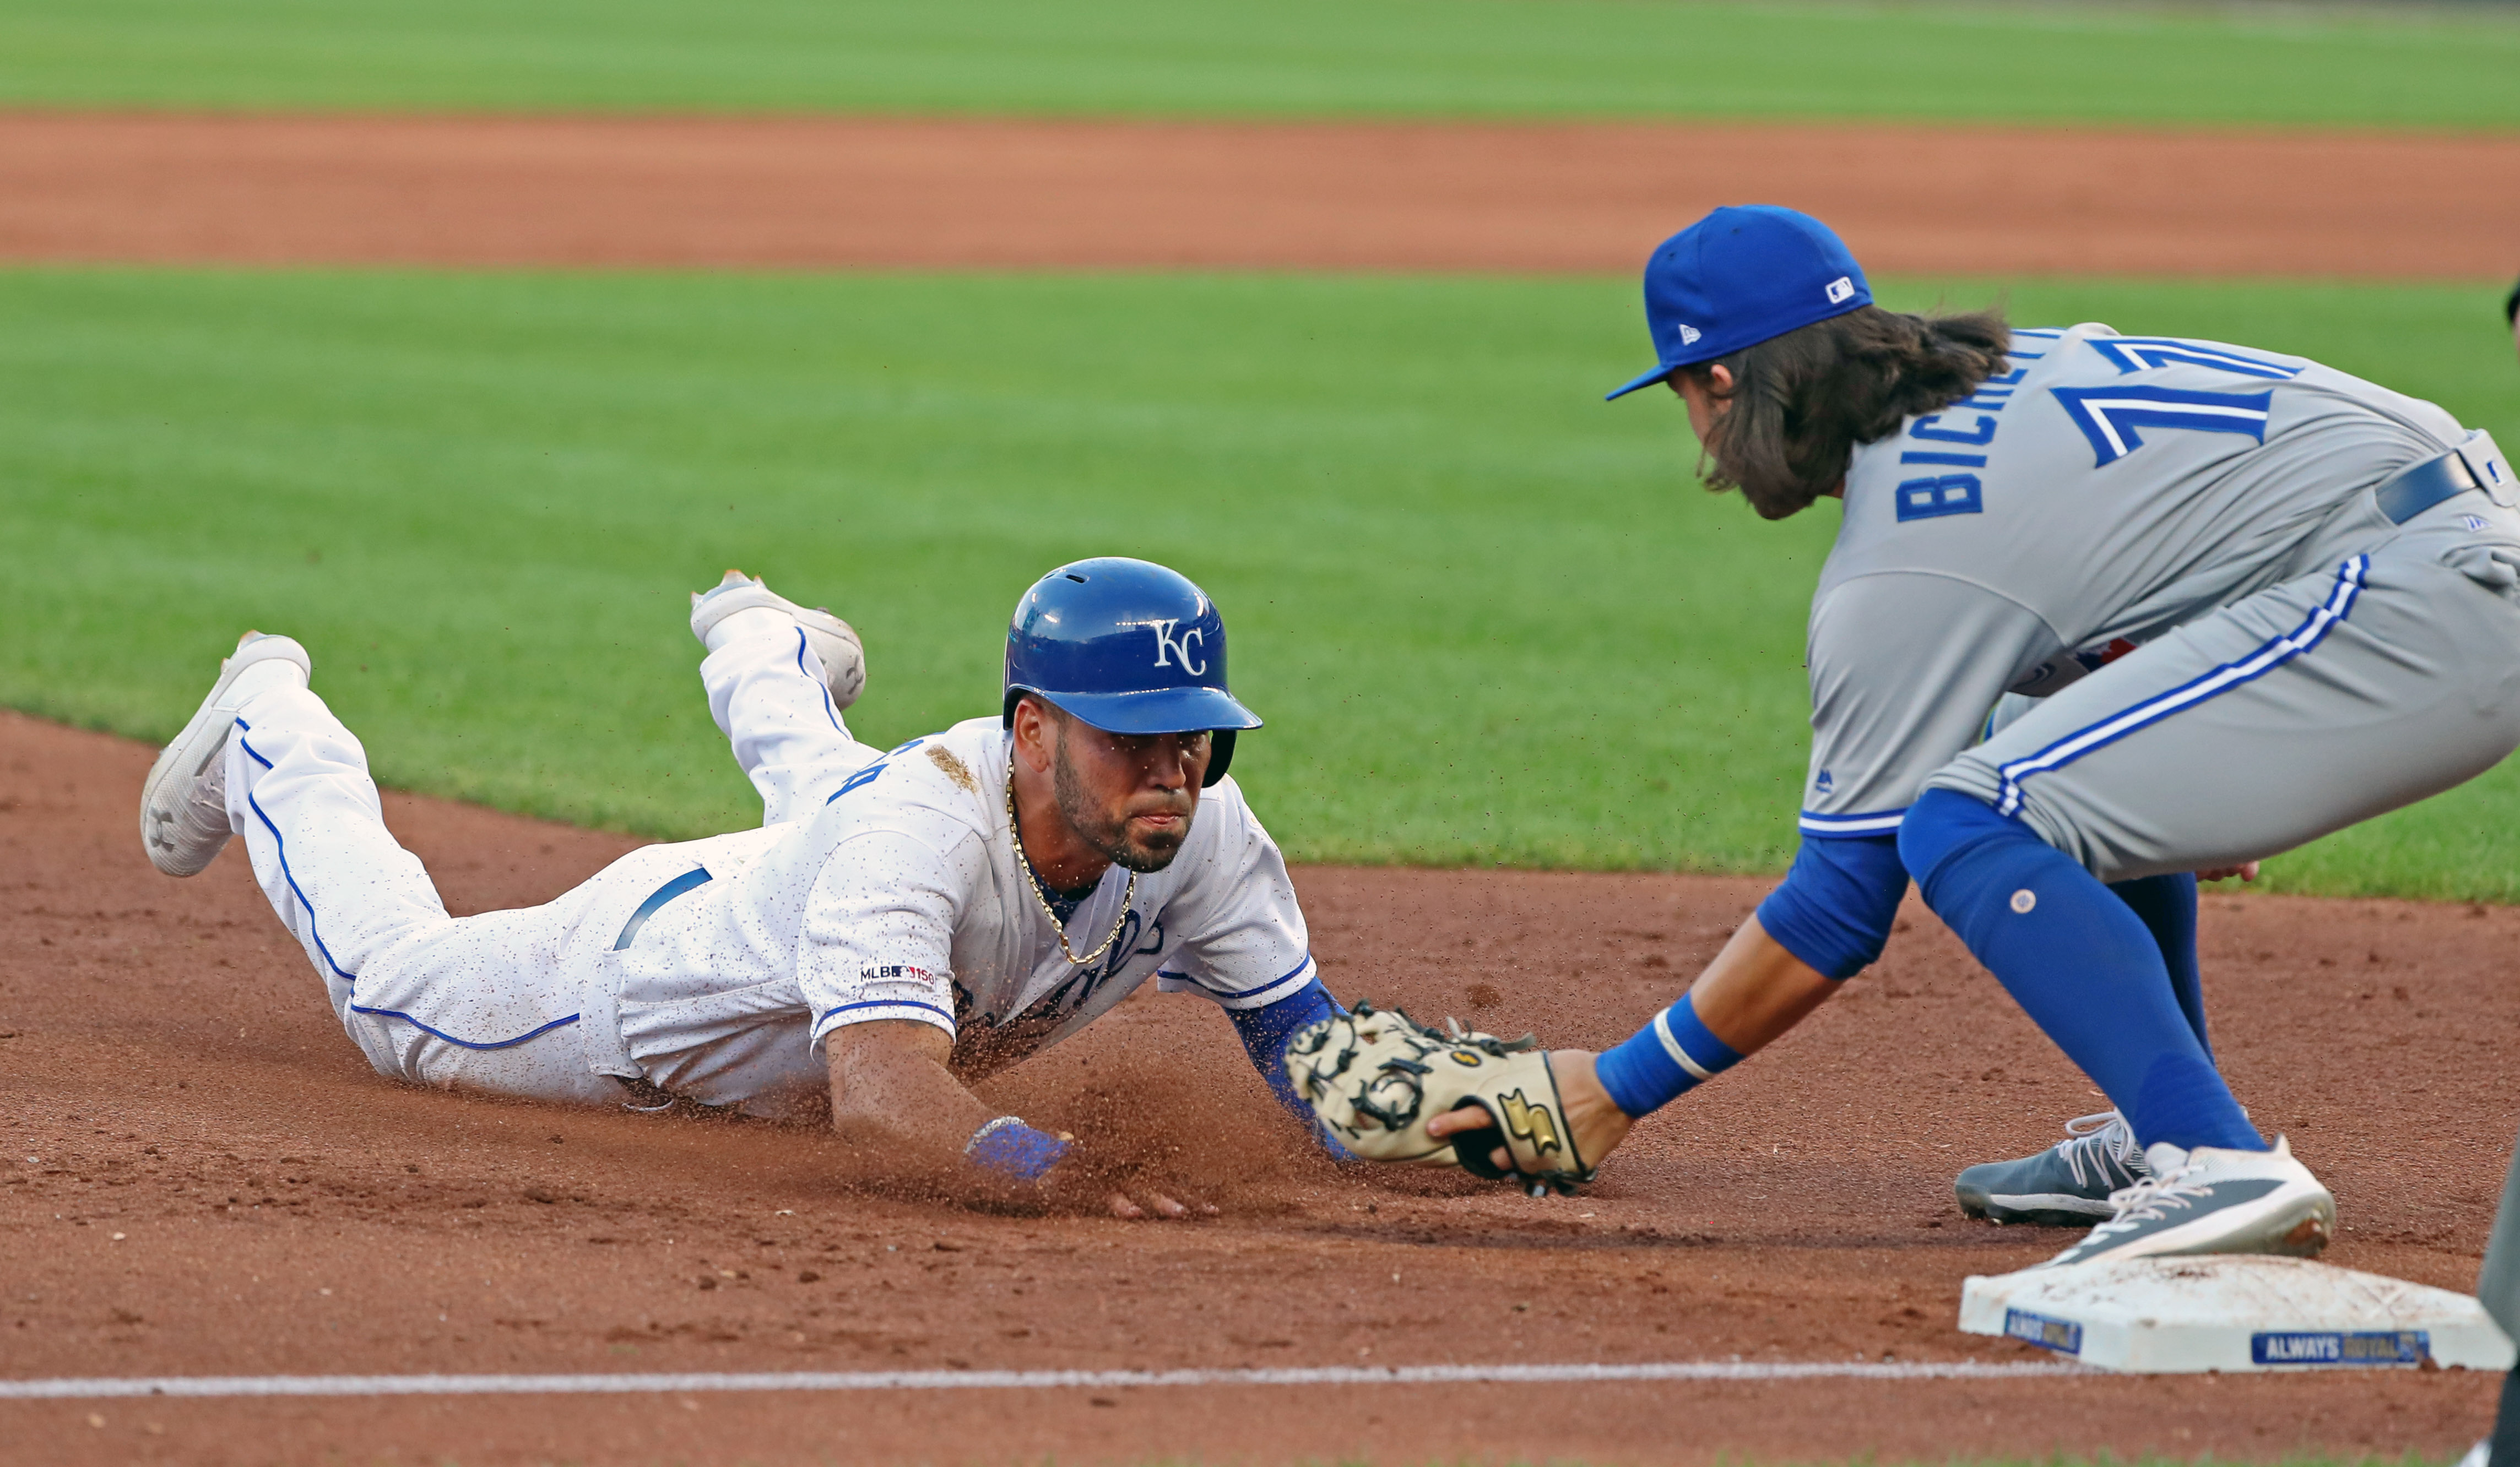 Kansas City Royals shortstop Humbeto Arteaga (2) is tagged out at third base by Toronto Blue Jays shortstop Bo Bichette (11) during the second inning at Kauffman Stadium.